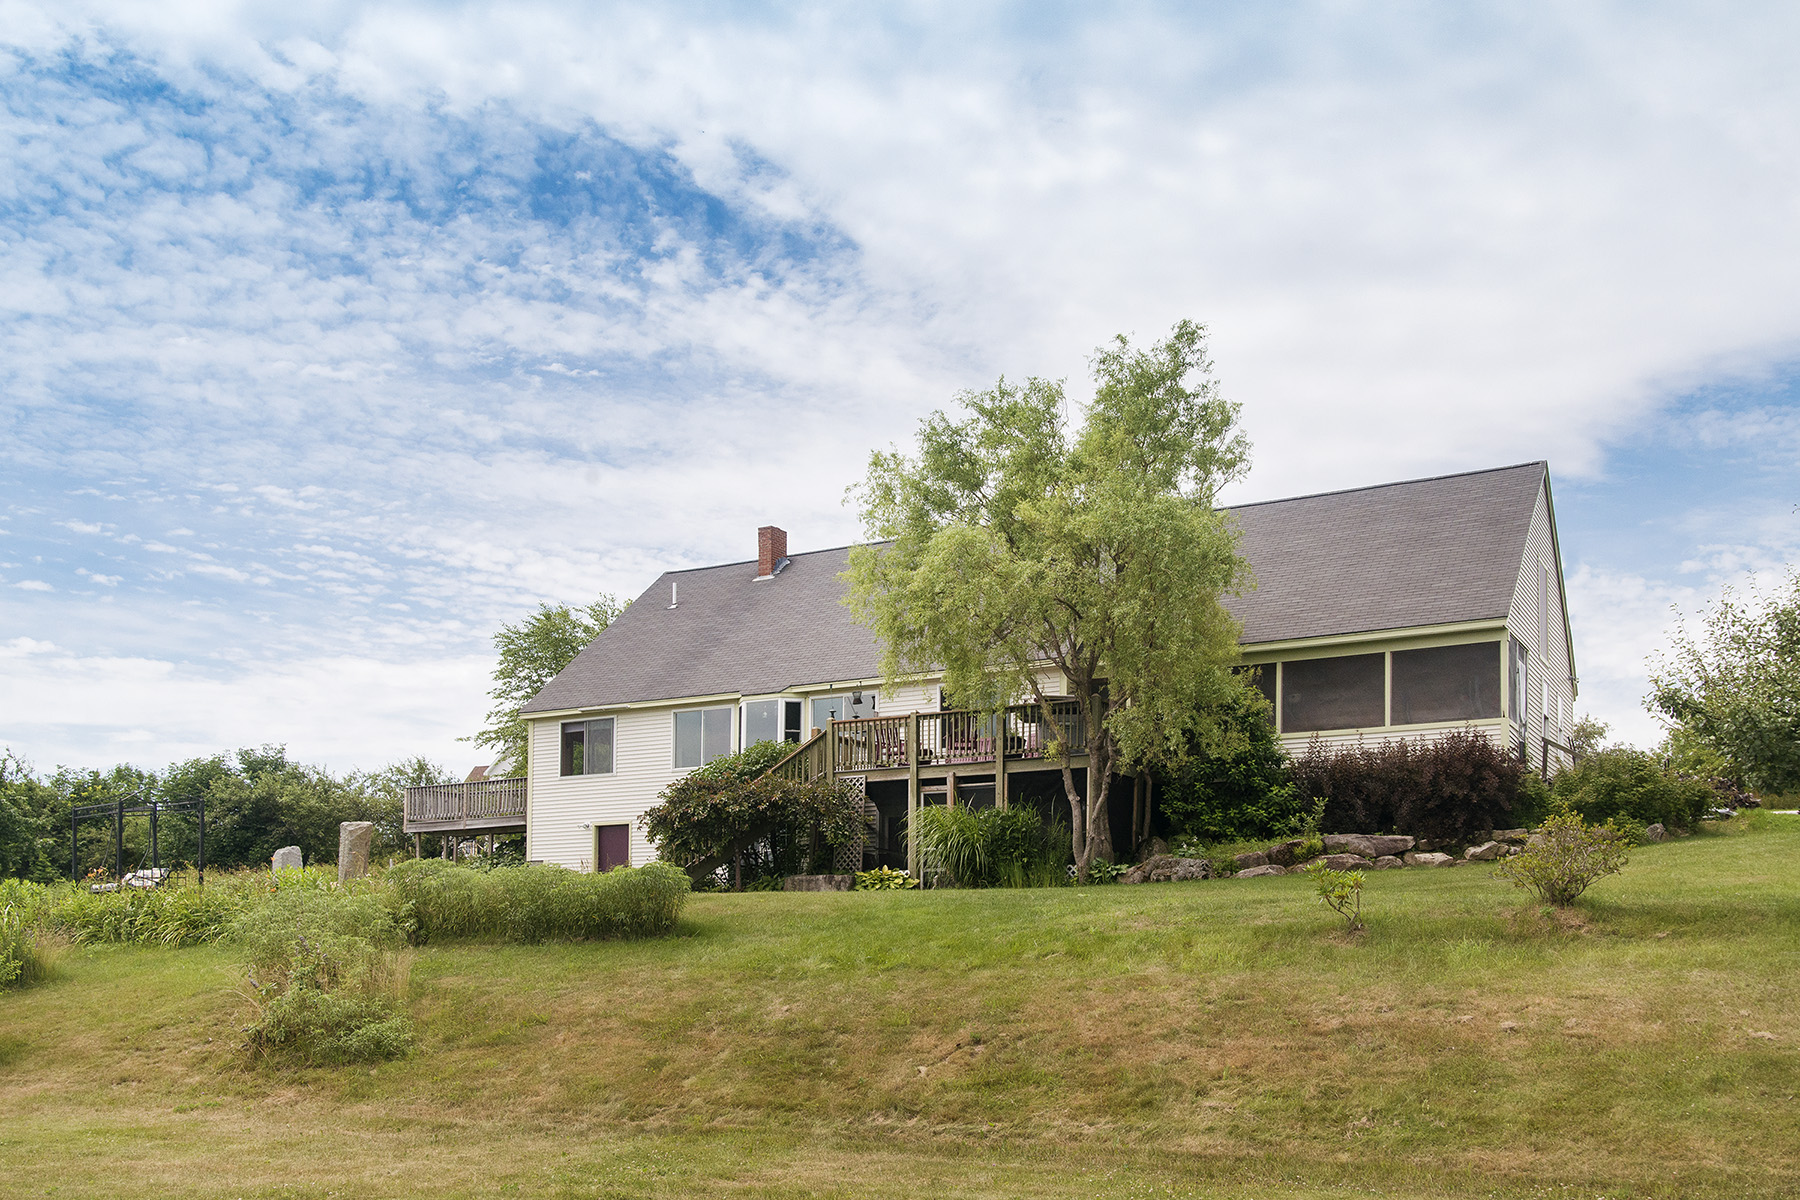 Single Family Home for Sale at 17 Orchard View Drive Waterford, Maine, 04088 United States